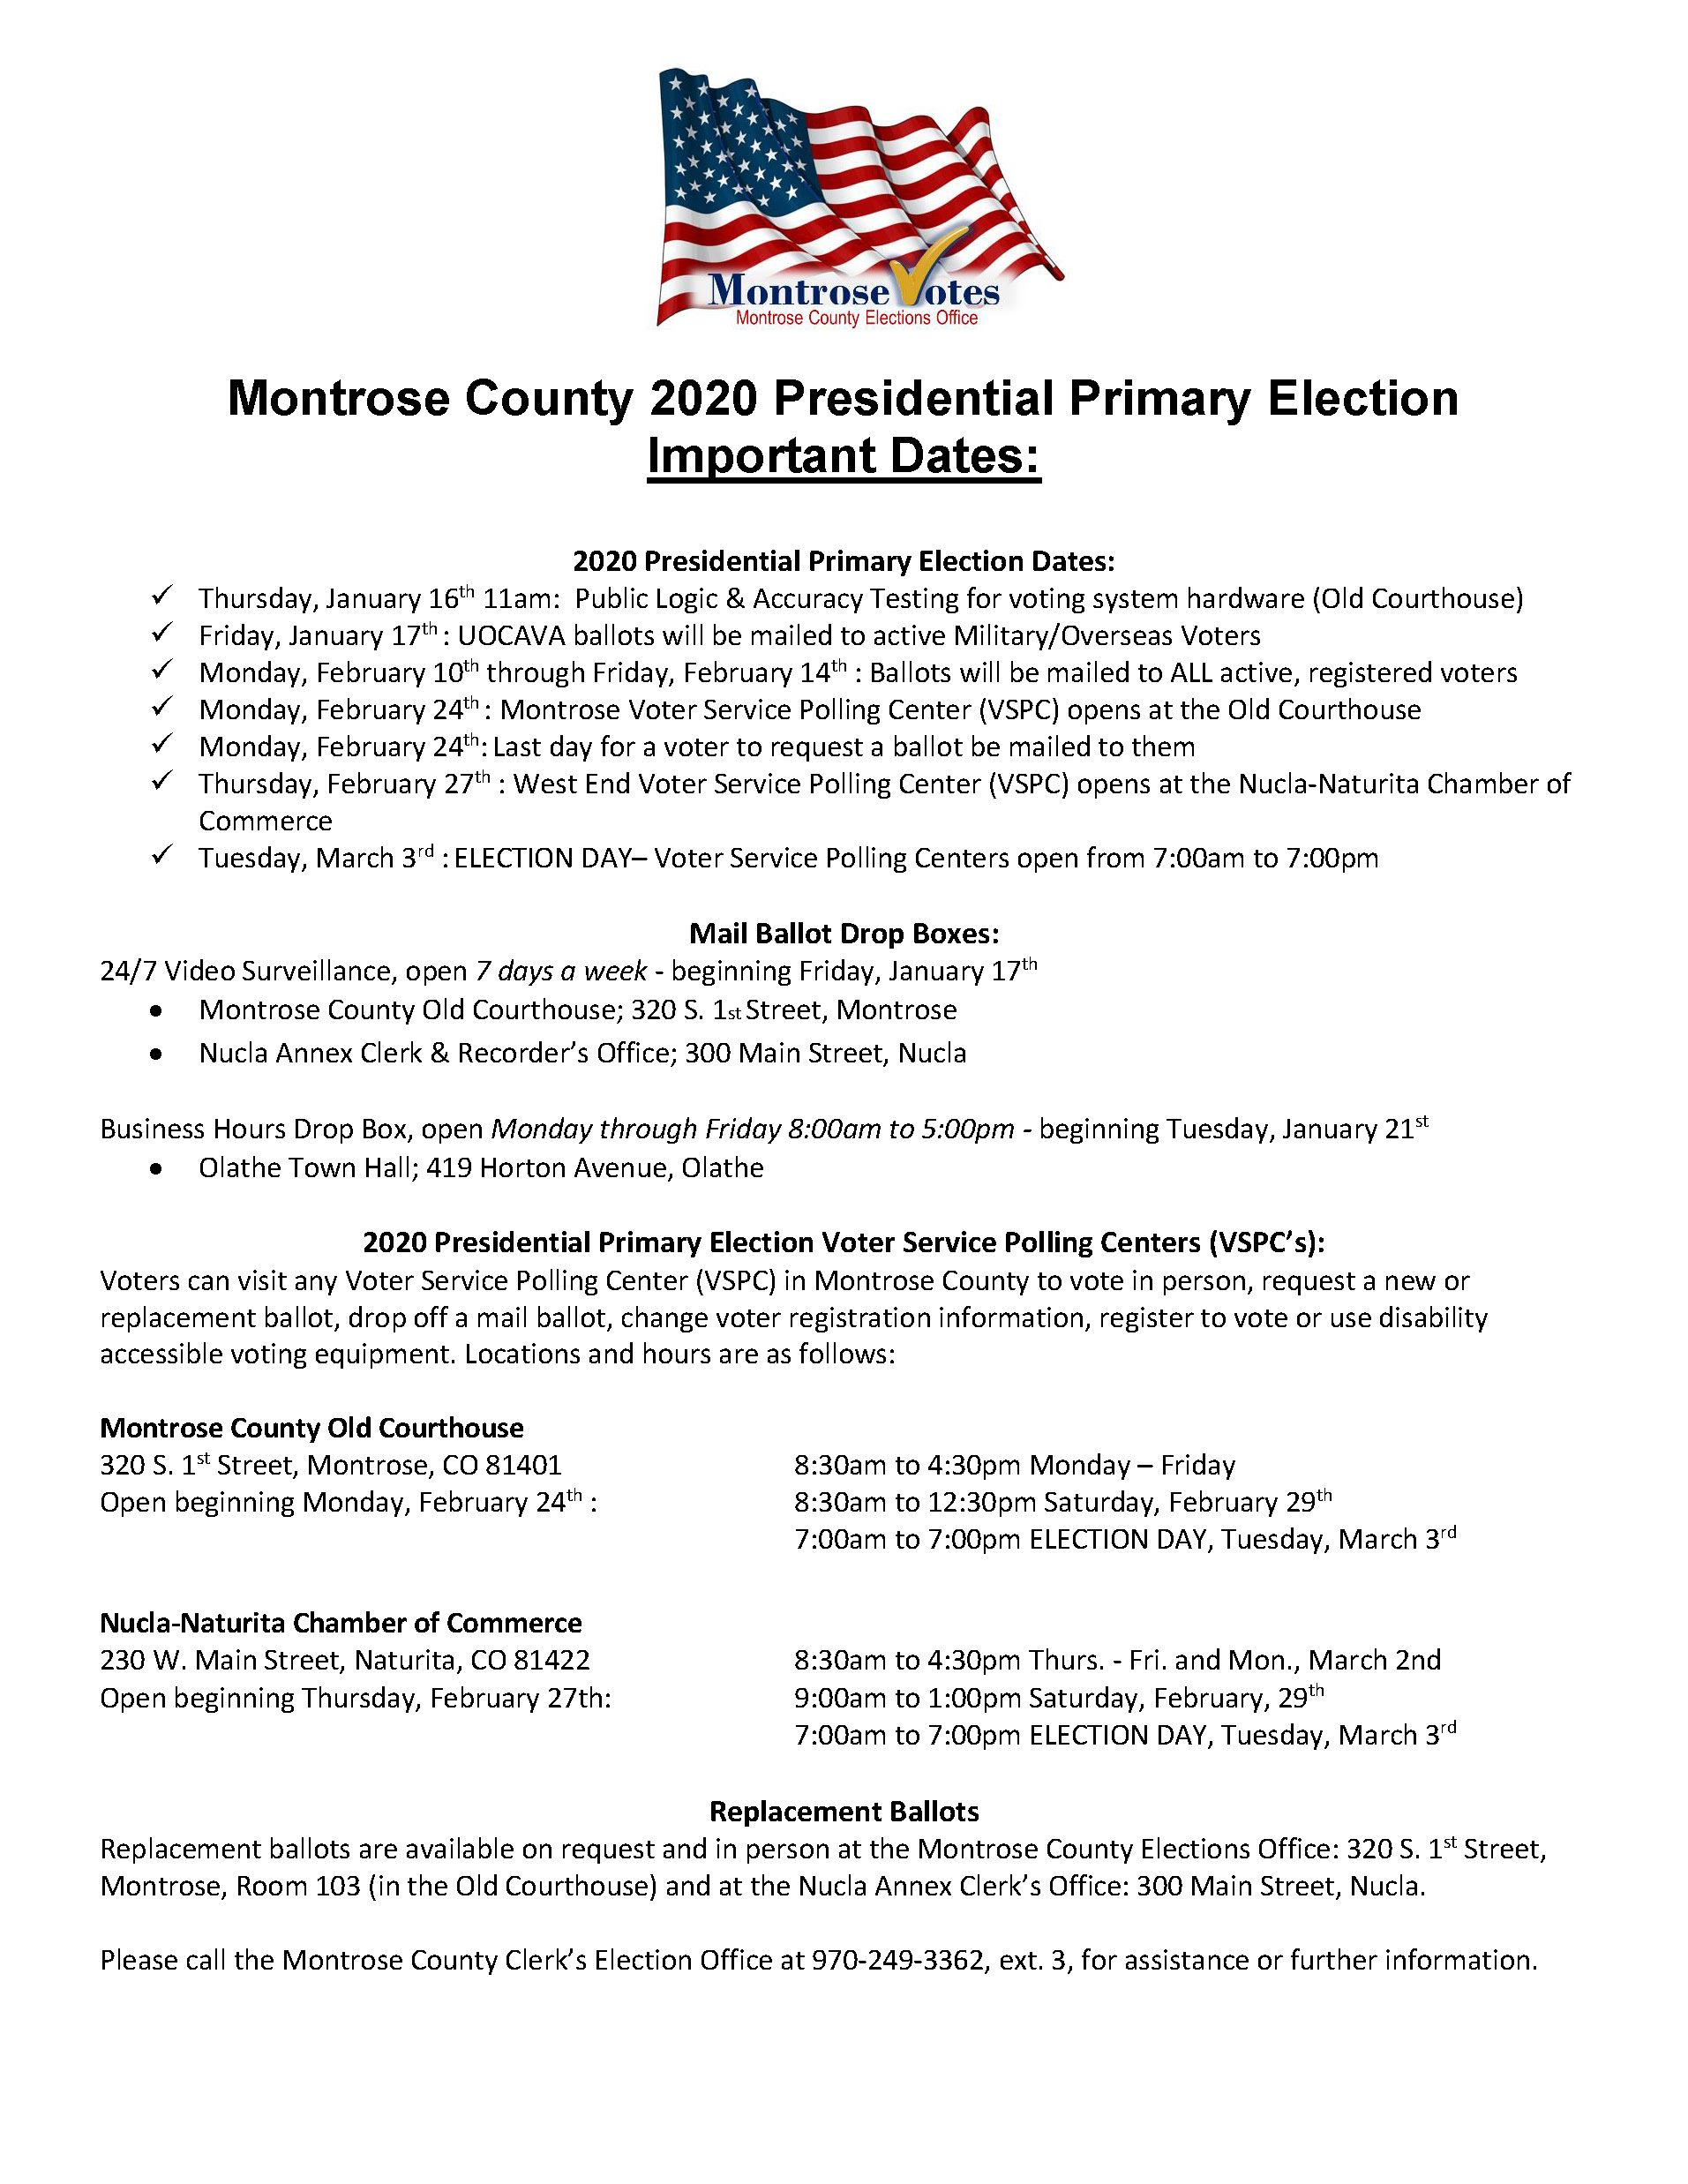 2020 Pres Pri Election Important Dates